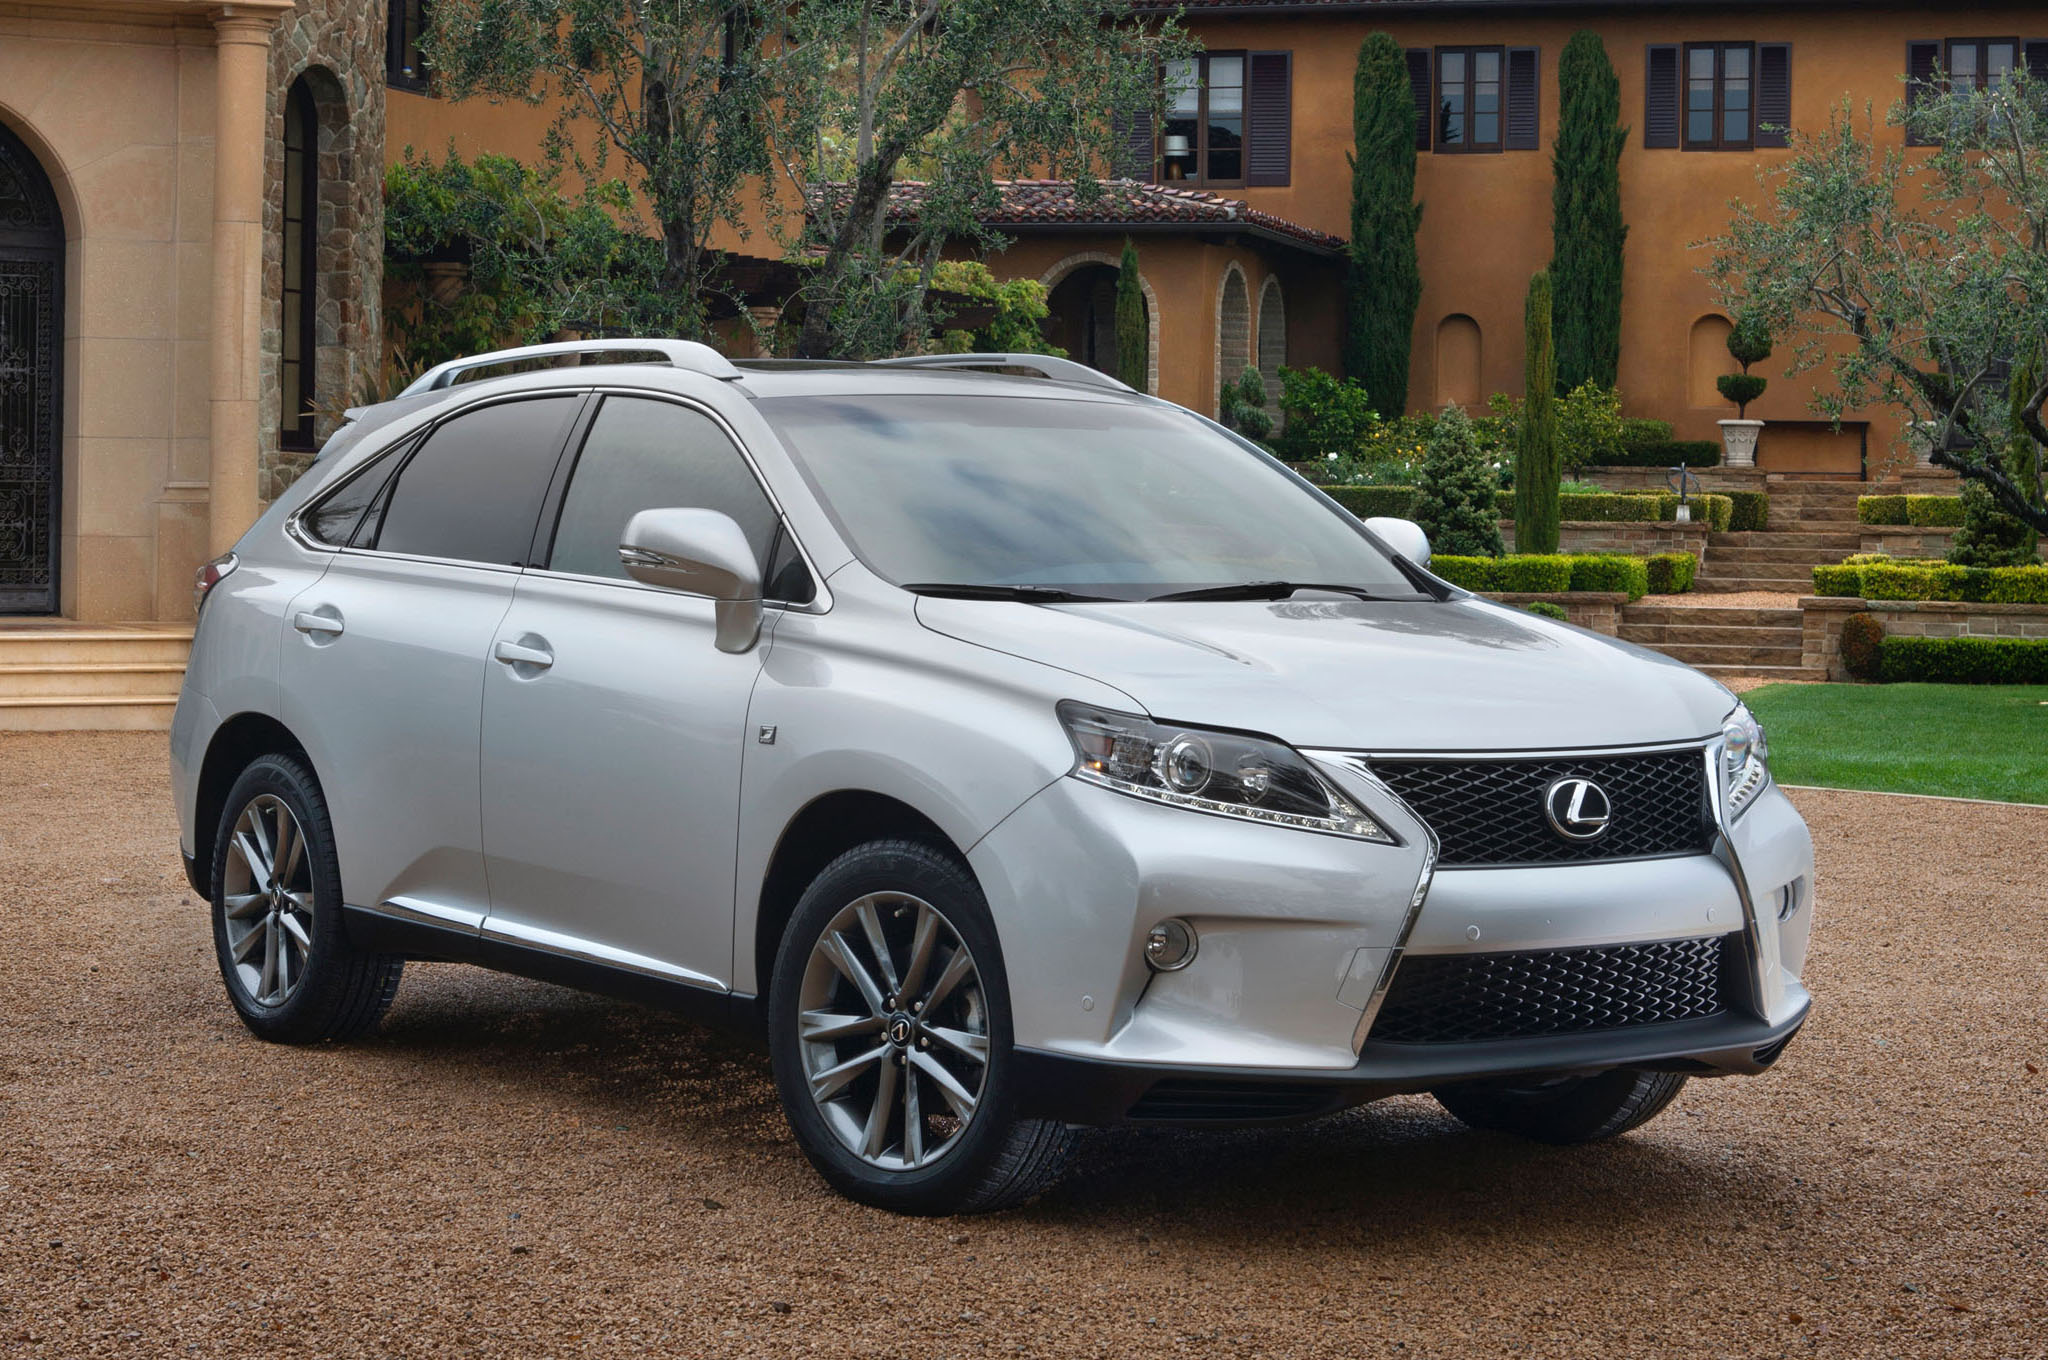 2014 Lexus RX350 Priced at $40 670 RX450h From $47 320